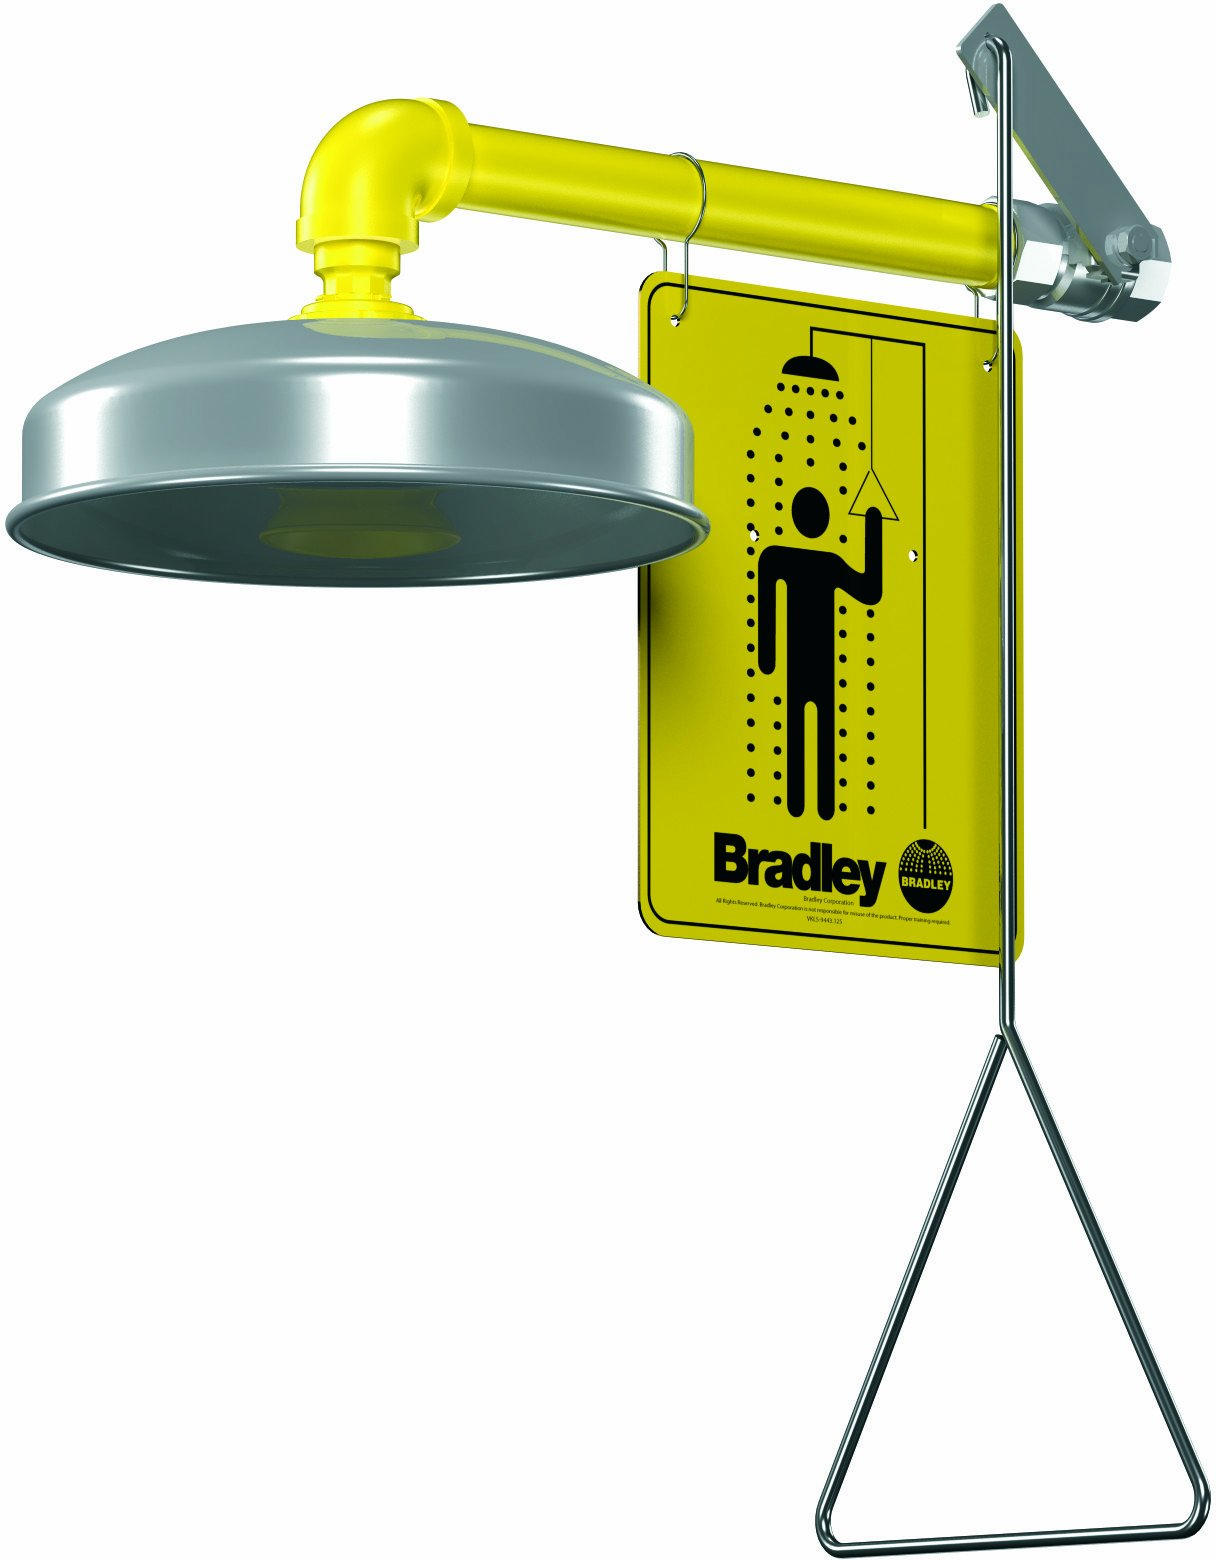 Bradley S19-120A Galvanized Steel 1 Spray Head Horizontal Supply Safety Shower with Stainless Steel Showerhead, Wall Mount, 20 GPM Water Flow, 9'' Width x 25-1/2'' Height x 15-3/4'' Depth